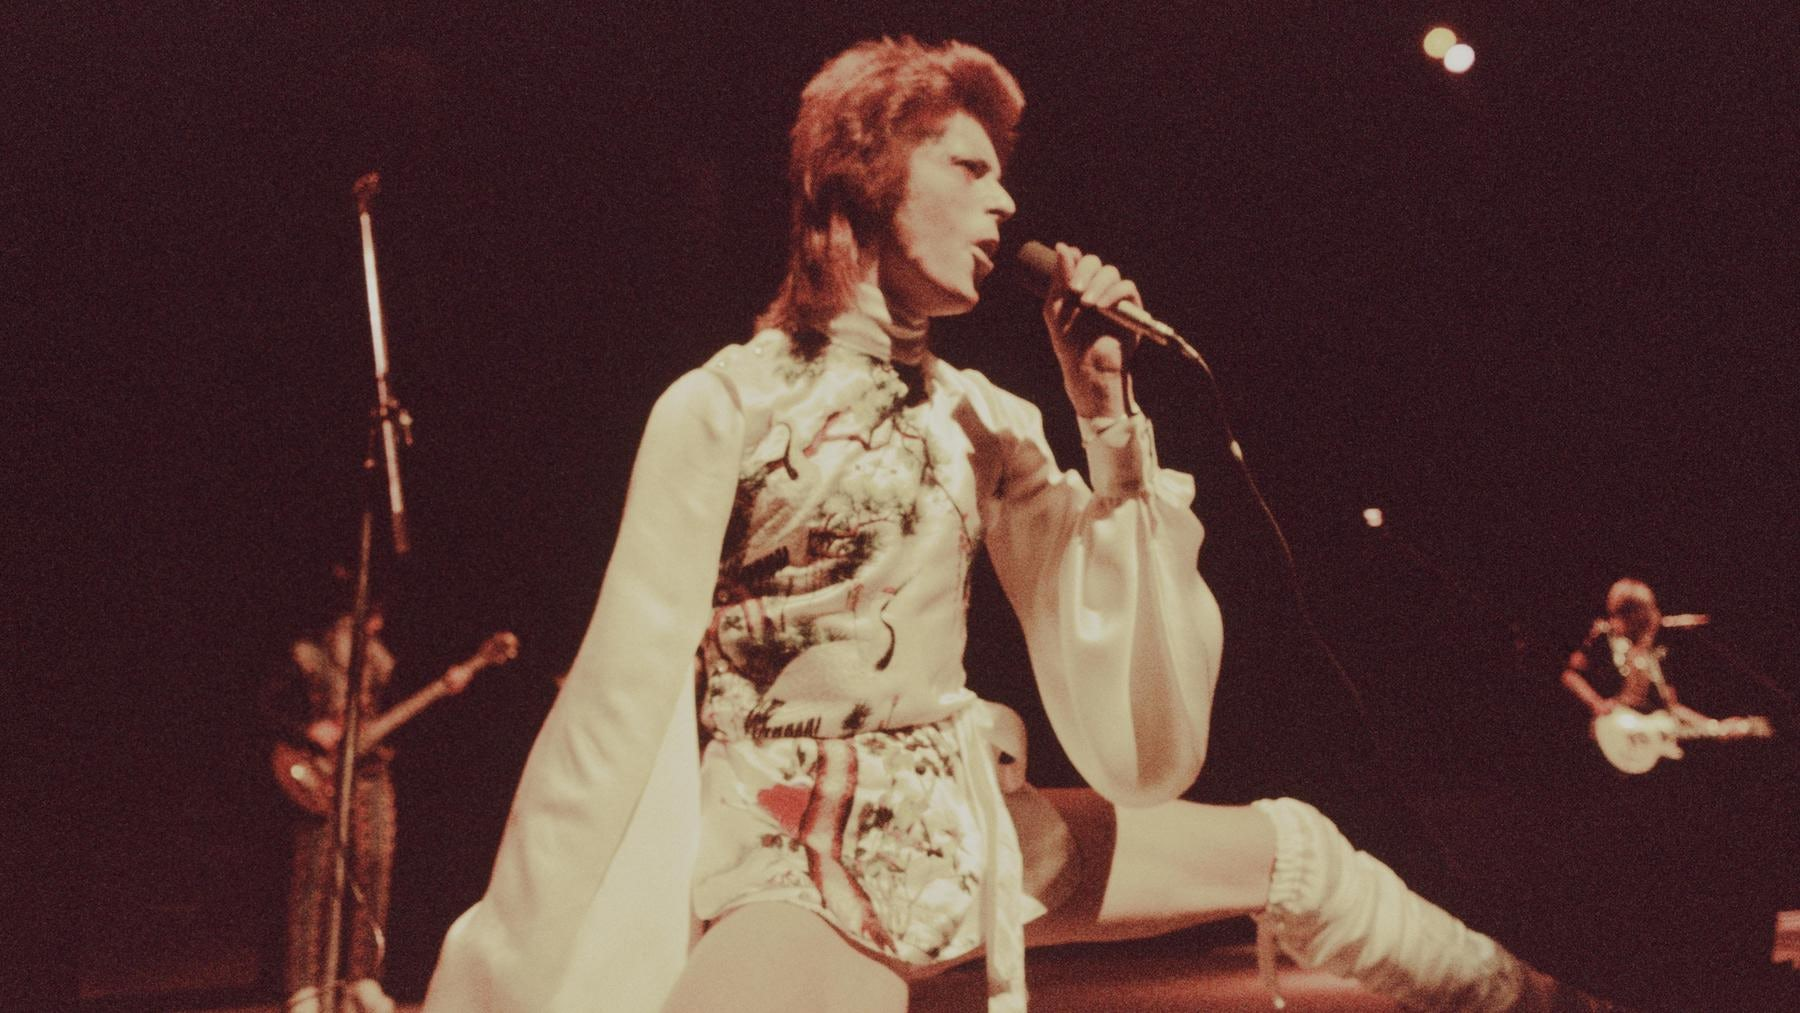 David Bowie in 1973 by Koh Hasebe | Source: Getty Images